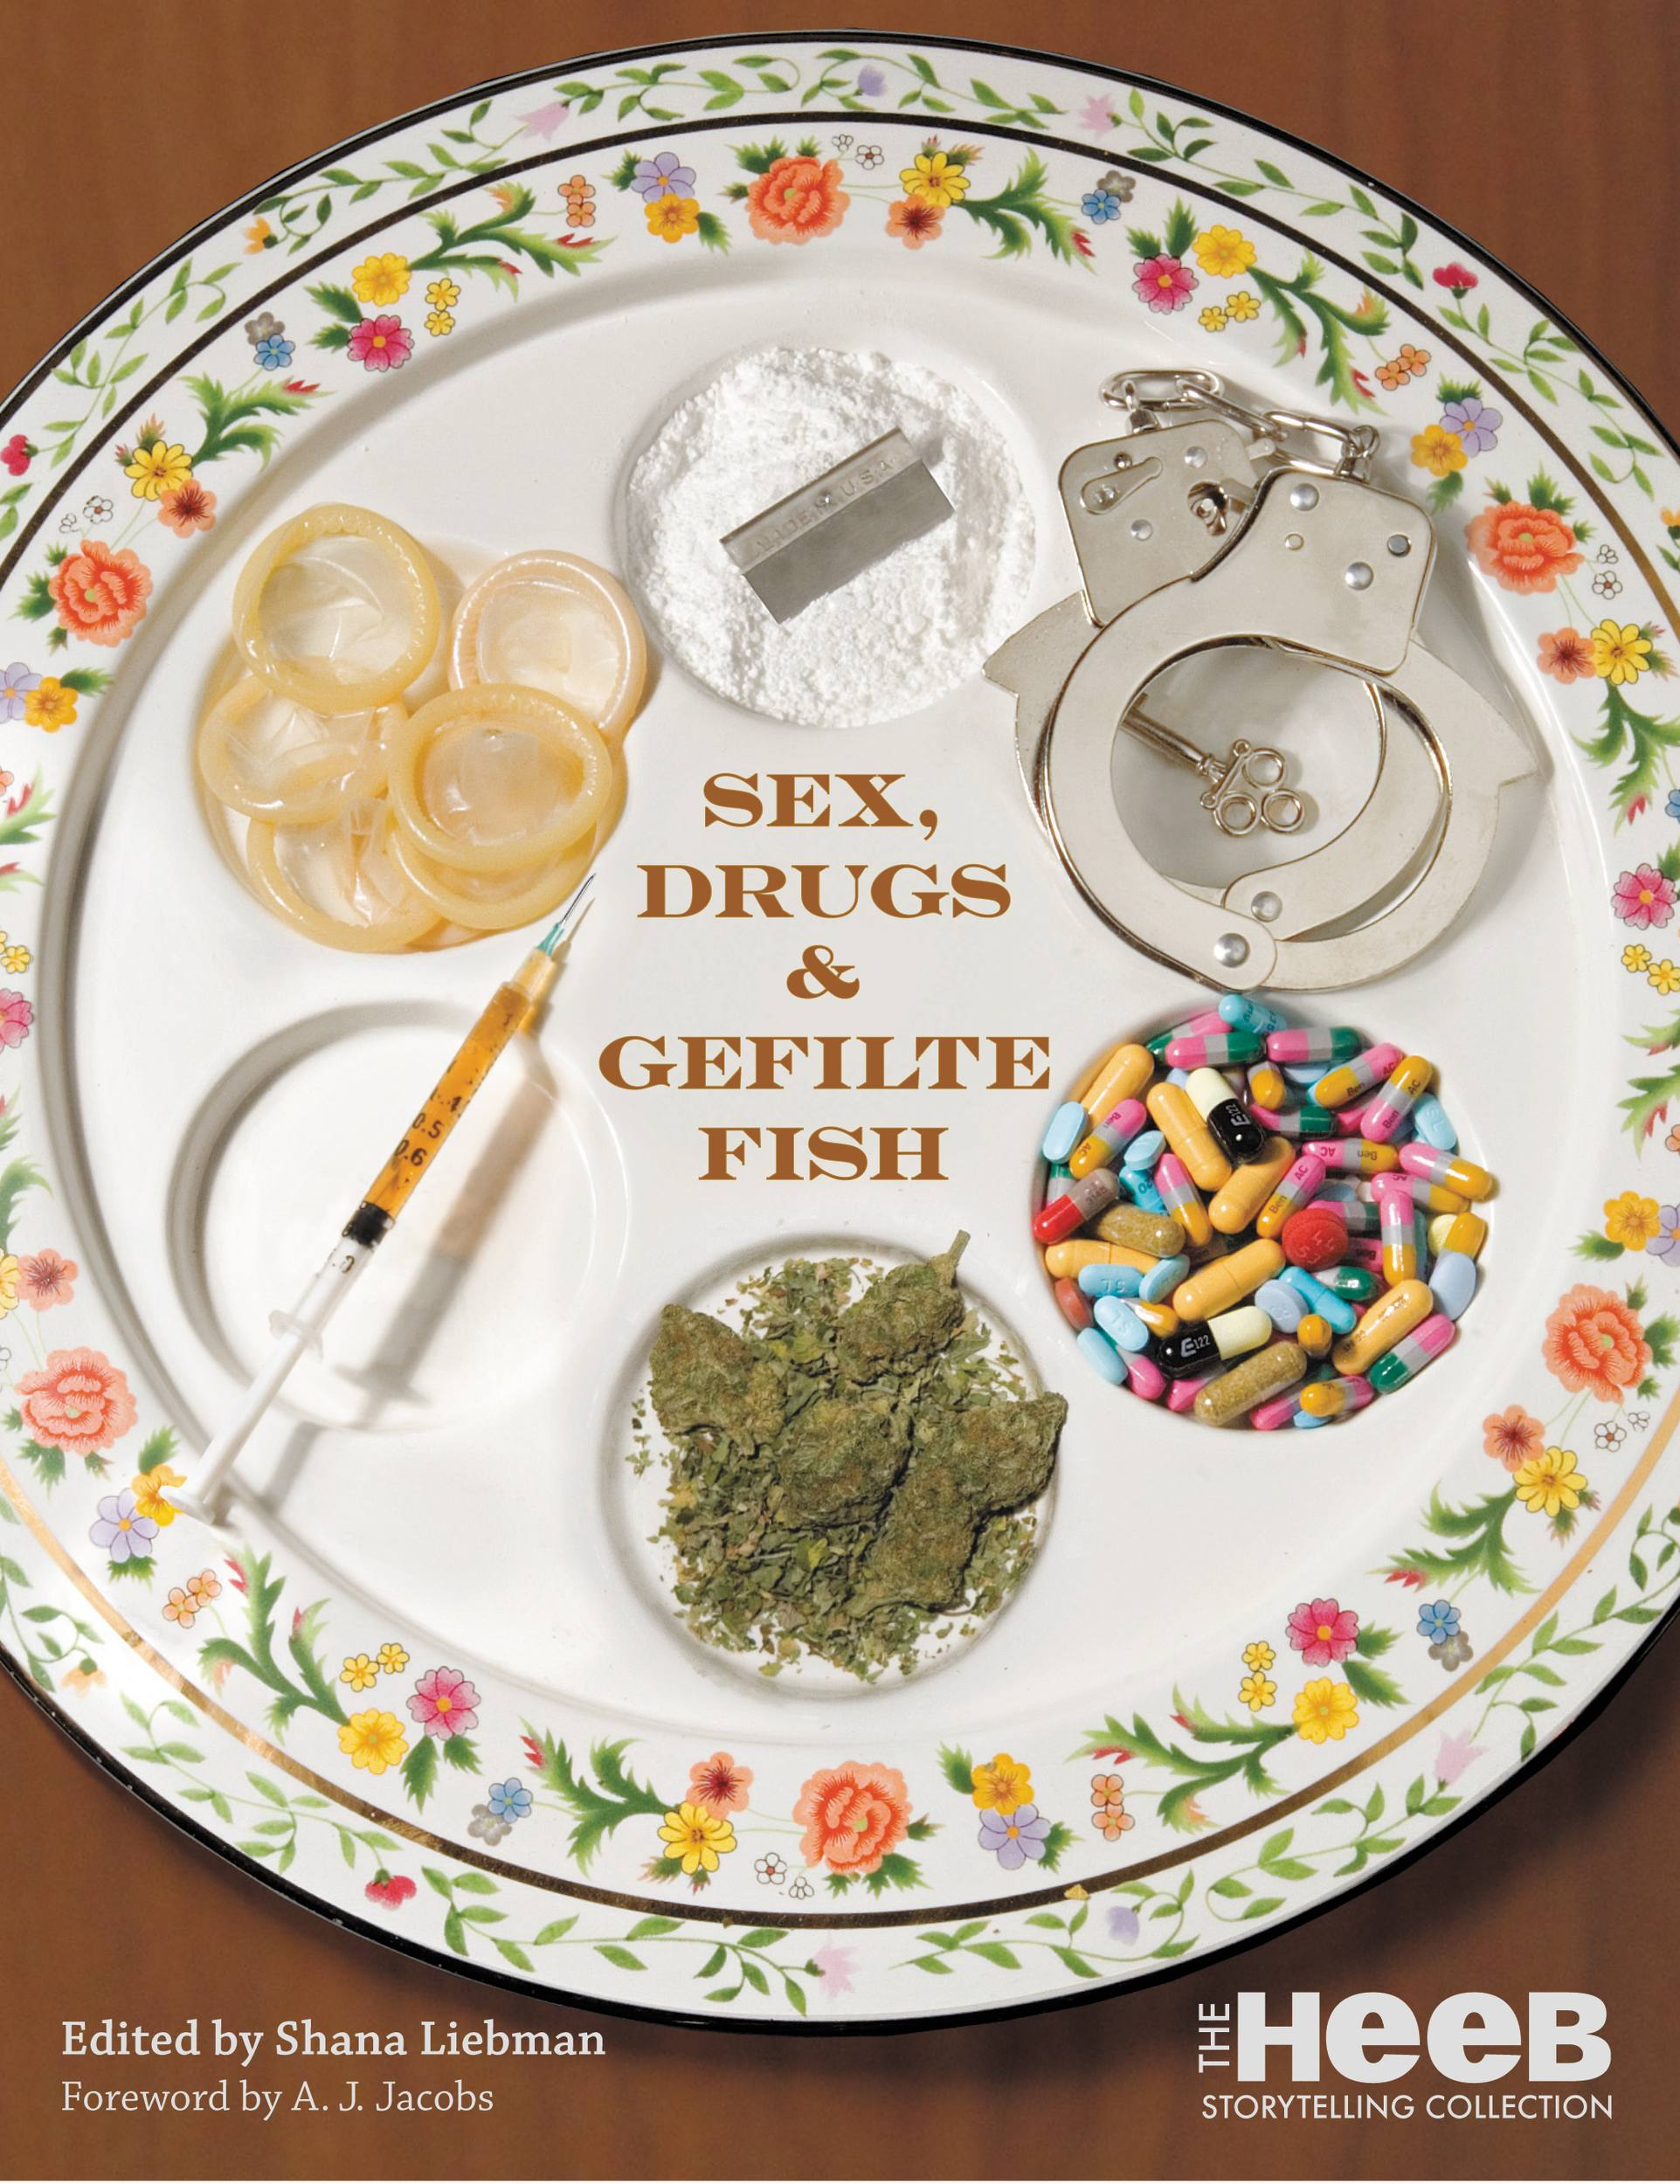 Sex, Drugs & Gefilte Fish